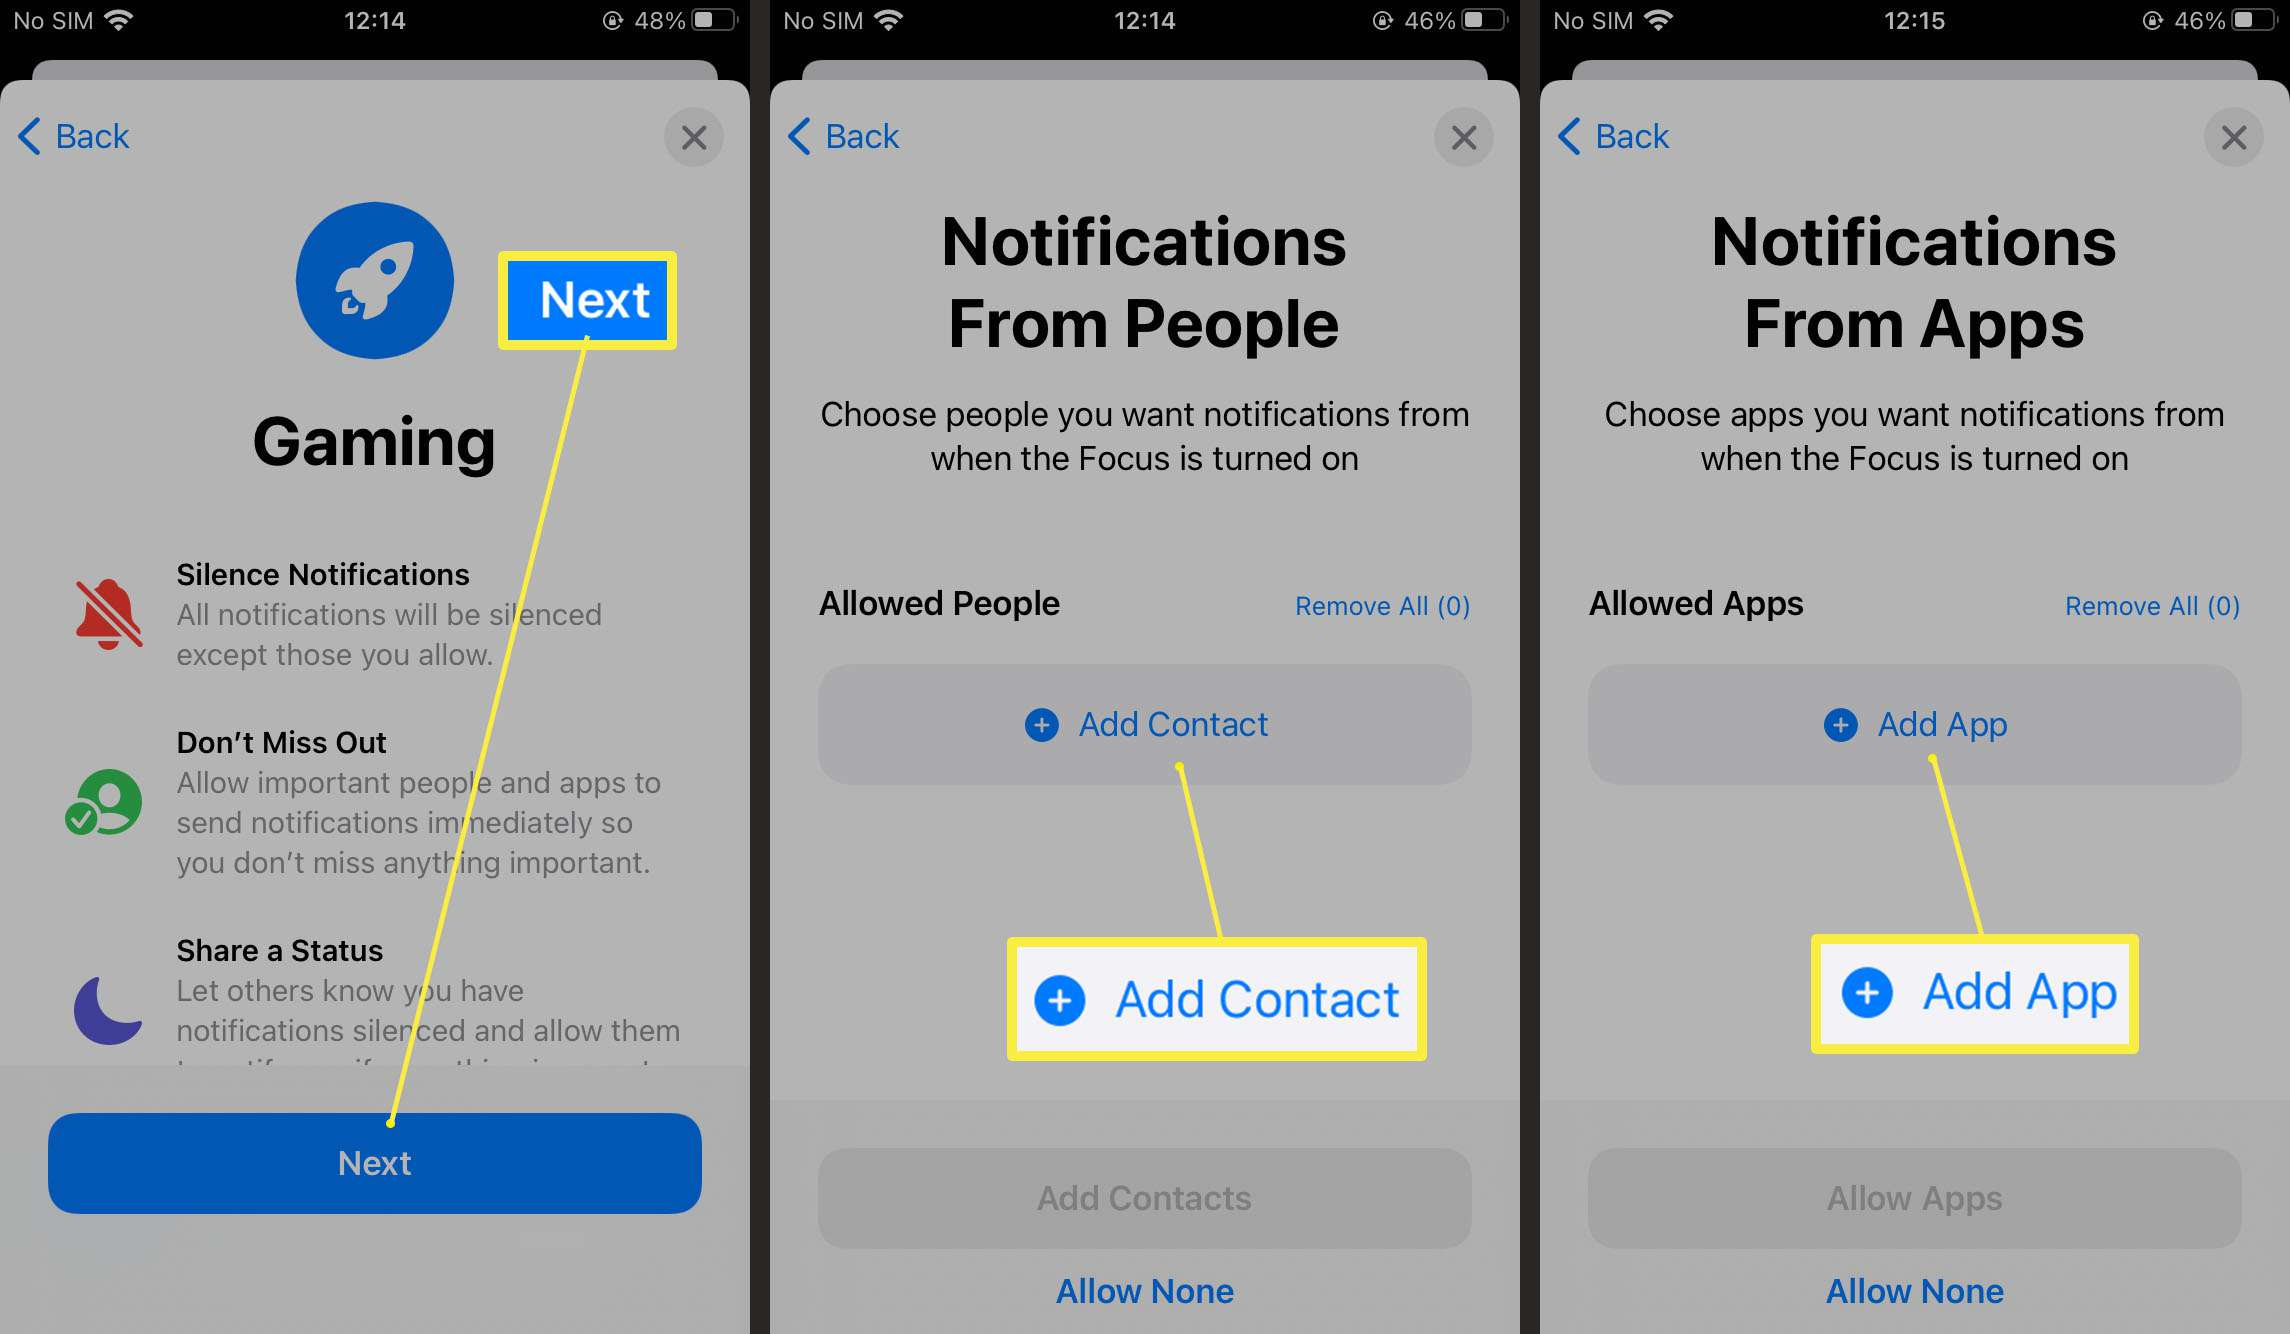 Steps required to allow notifications from people or apps using Focus Mode on iOS 15